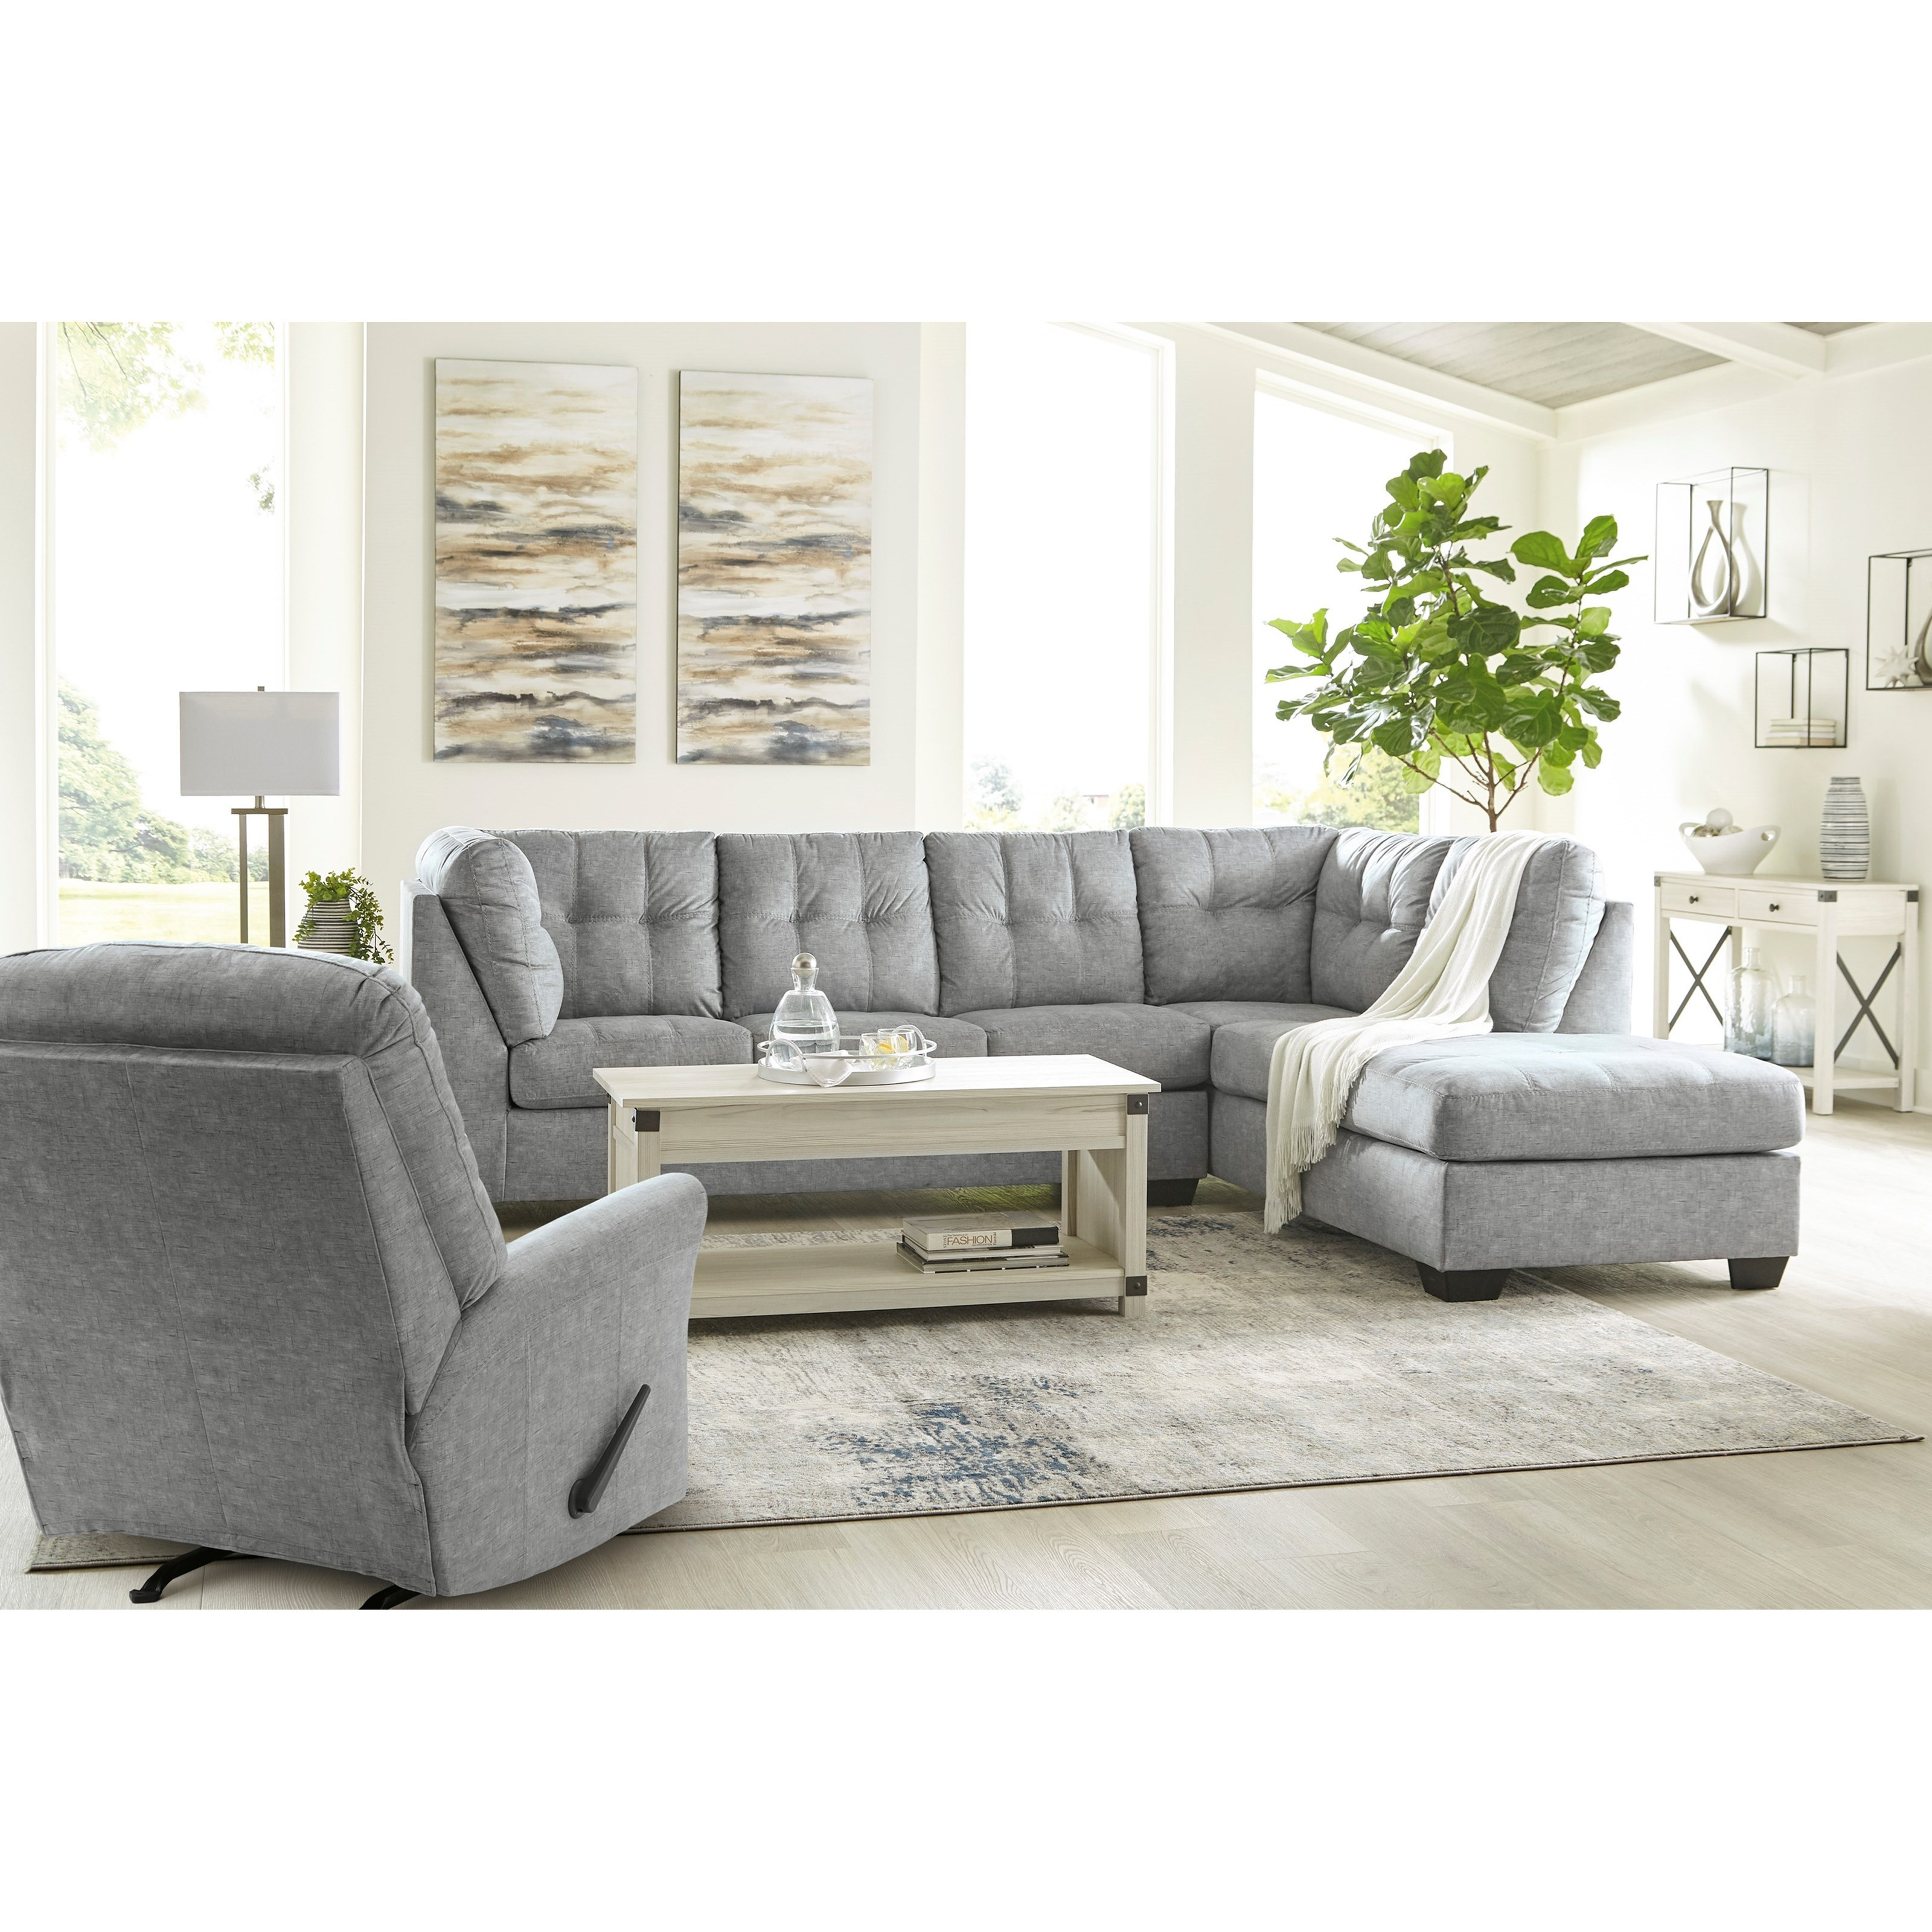 Falkirk Living Room Group by Benchcraft at Miller Waldrop Furniture and Decor